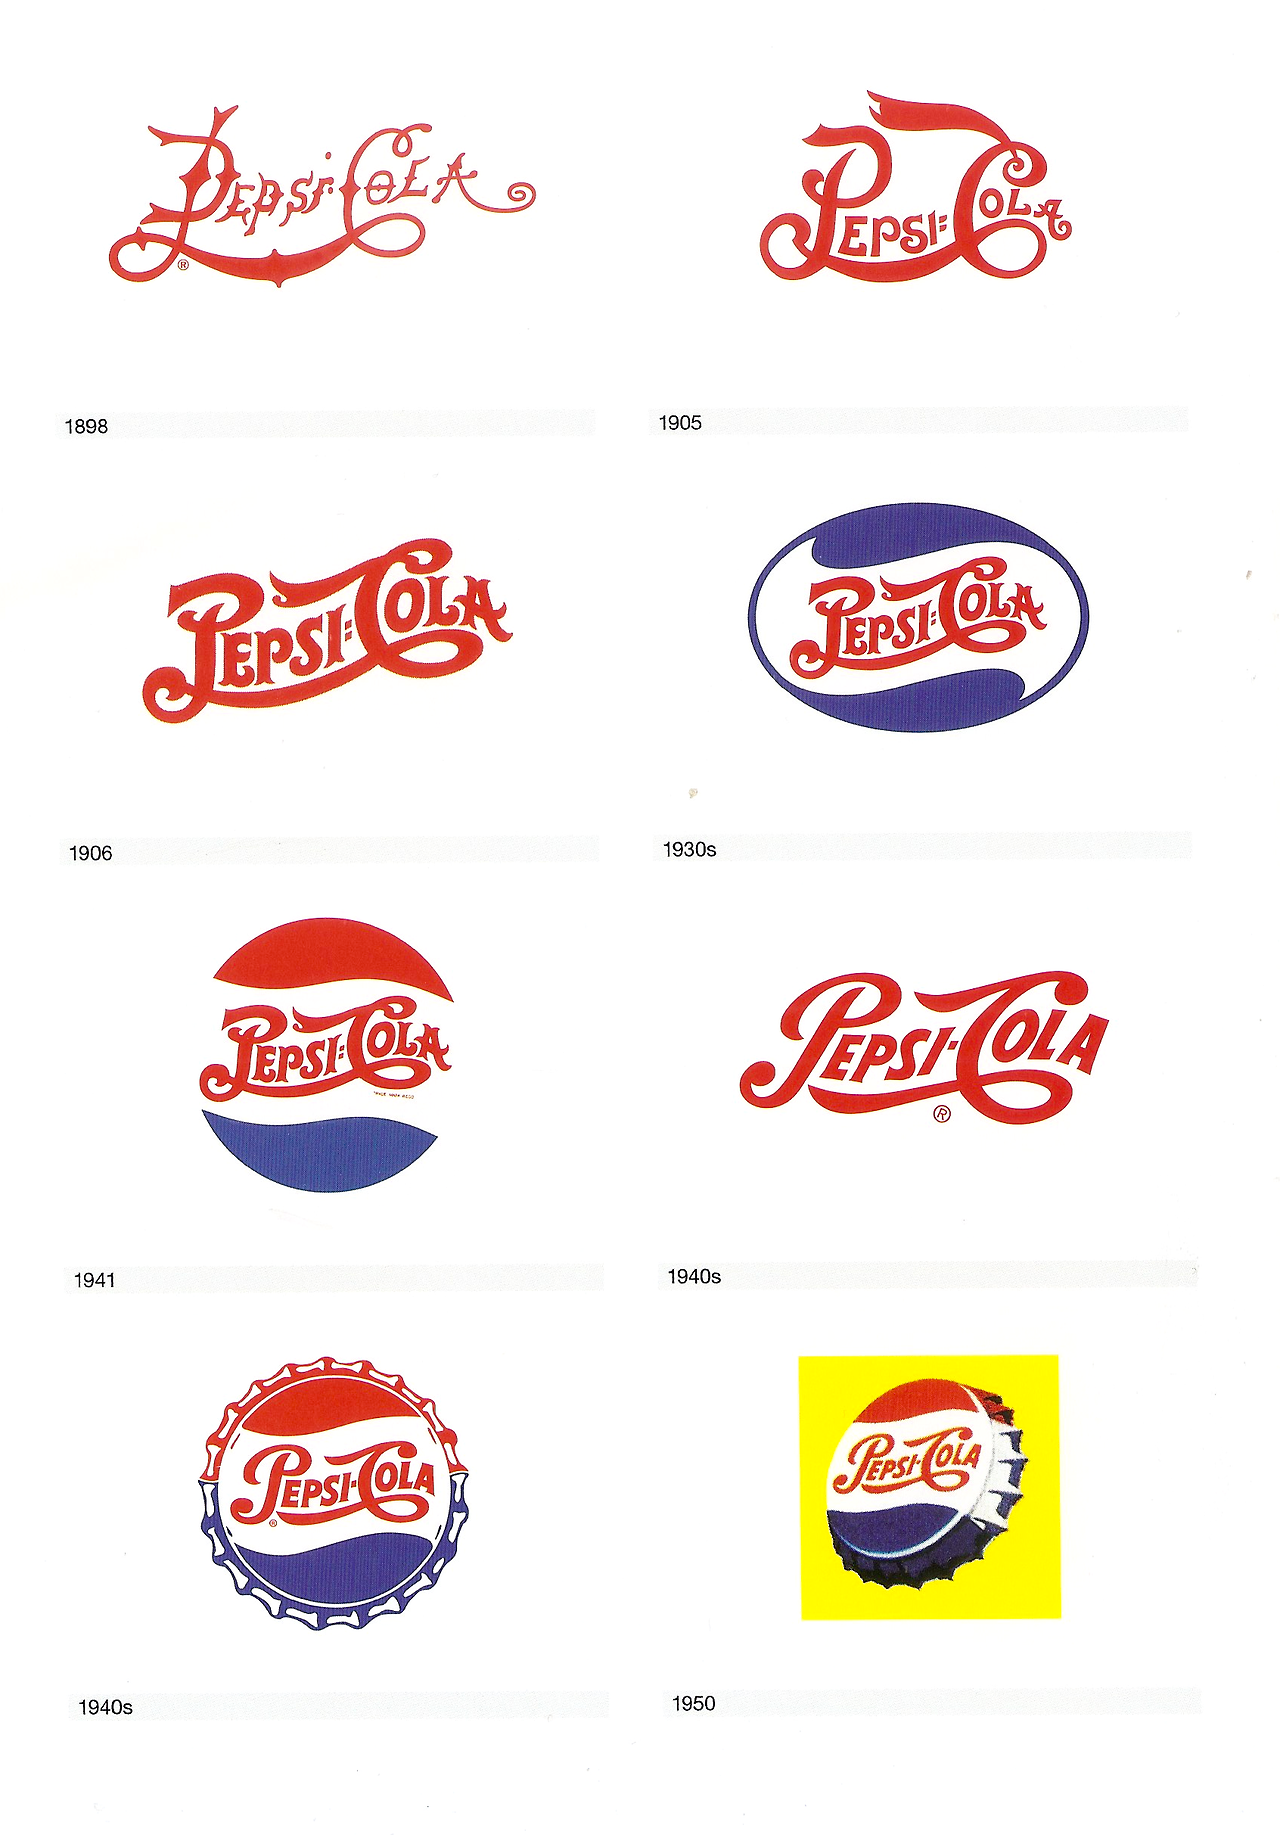 The Pepsi logo throughout the years. It's always the same